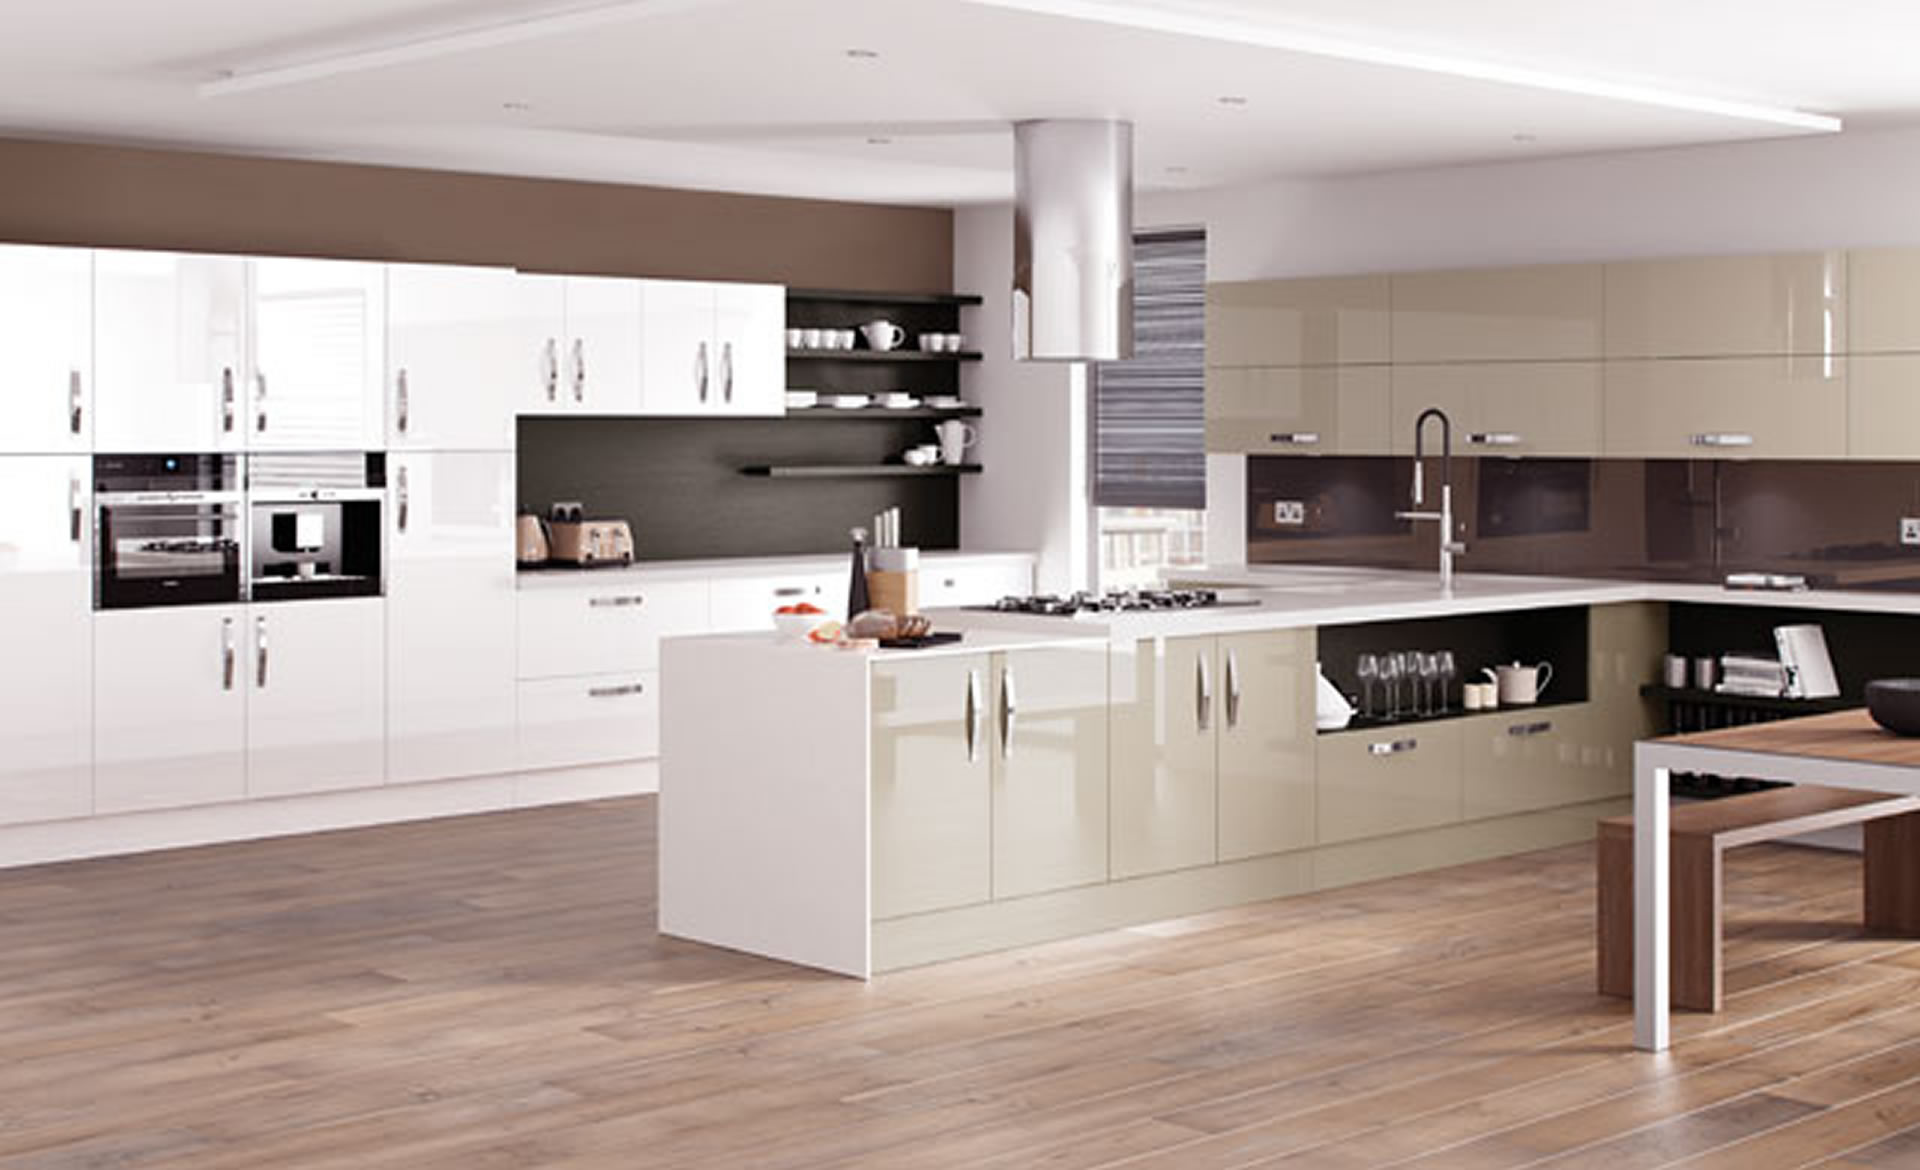 Kitchen designs astro gloss dakar and white - Images of kitchens ...